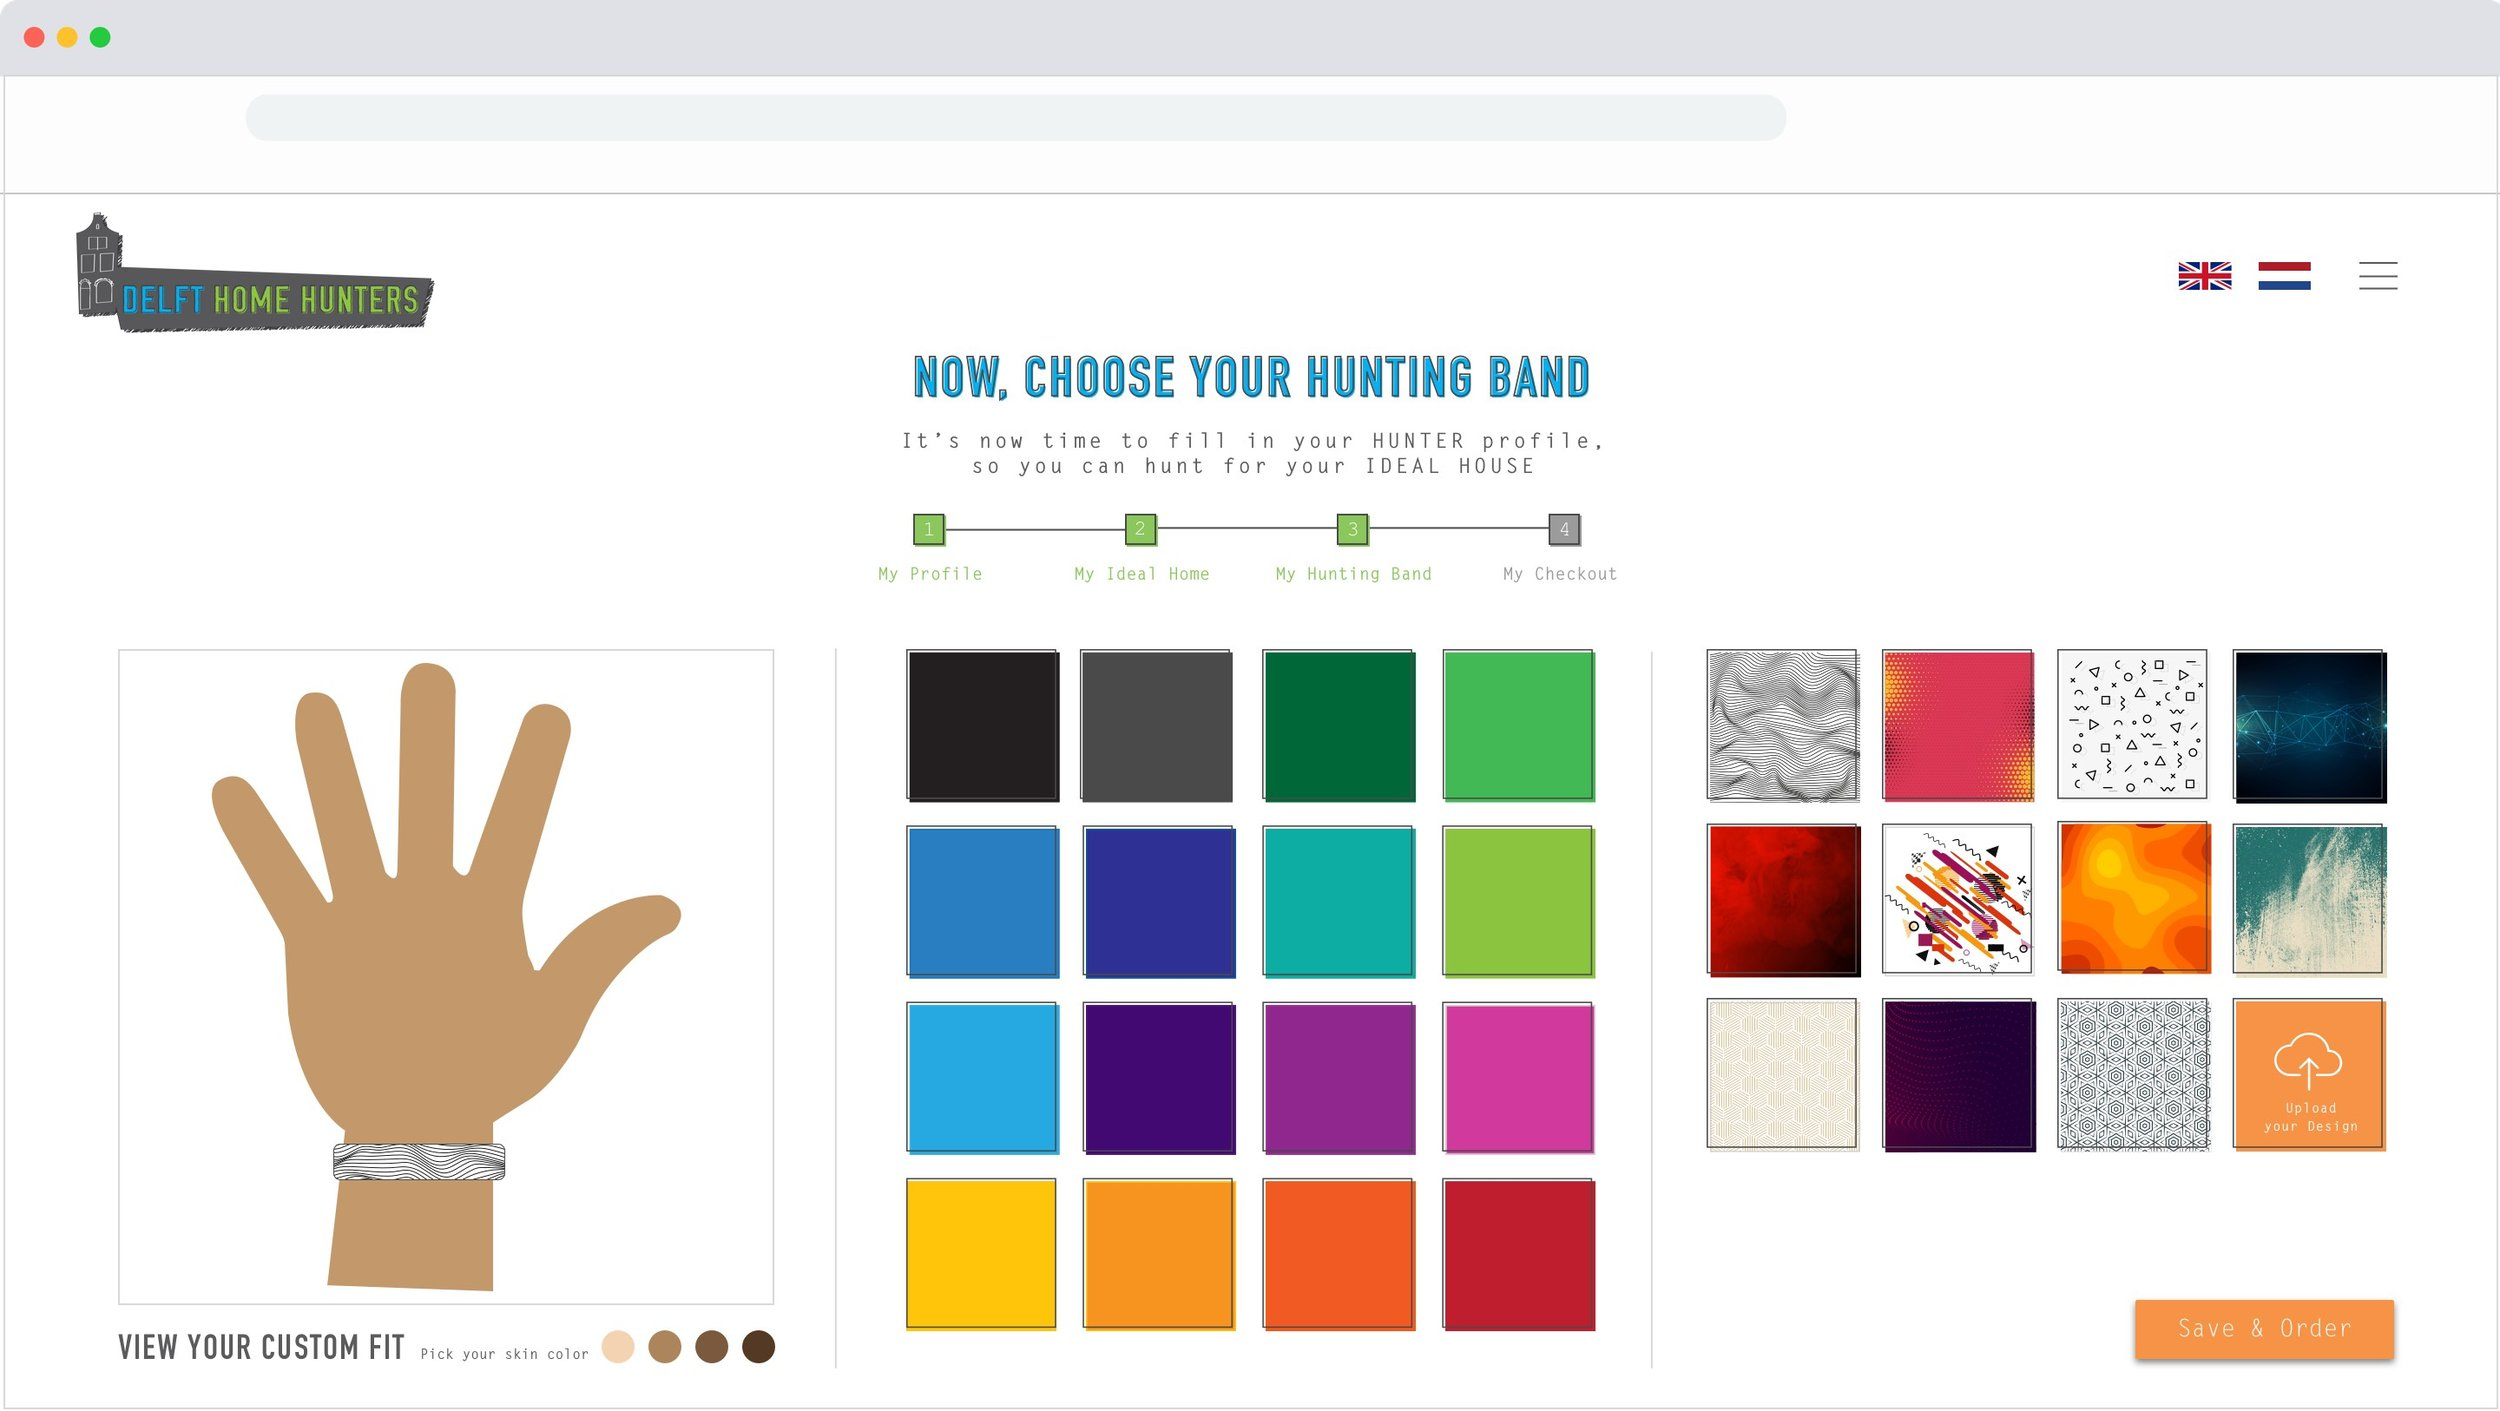 """5. The Hunting Band - Here the Home Hunter chooses the style of the active RFID wristband that will allow them to """"hunt"""" for housemates in the city."""